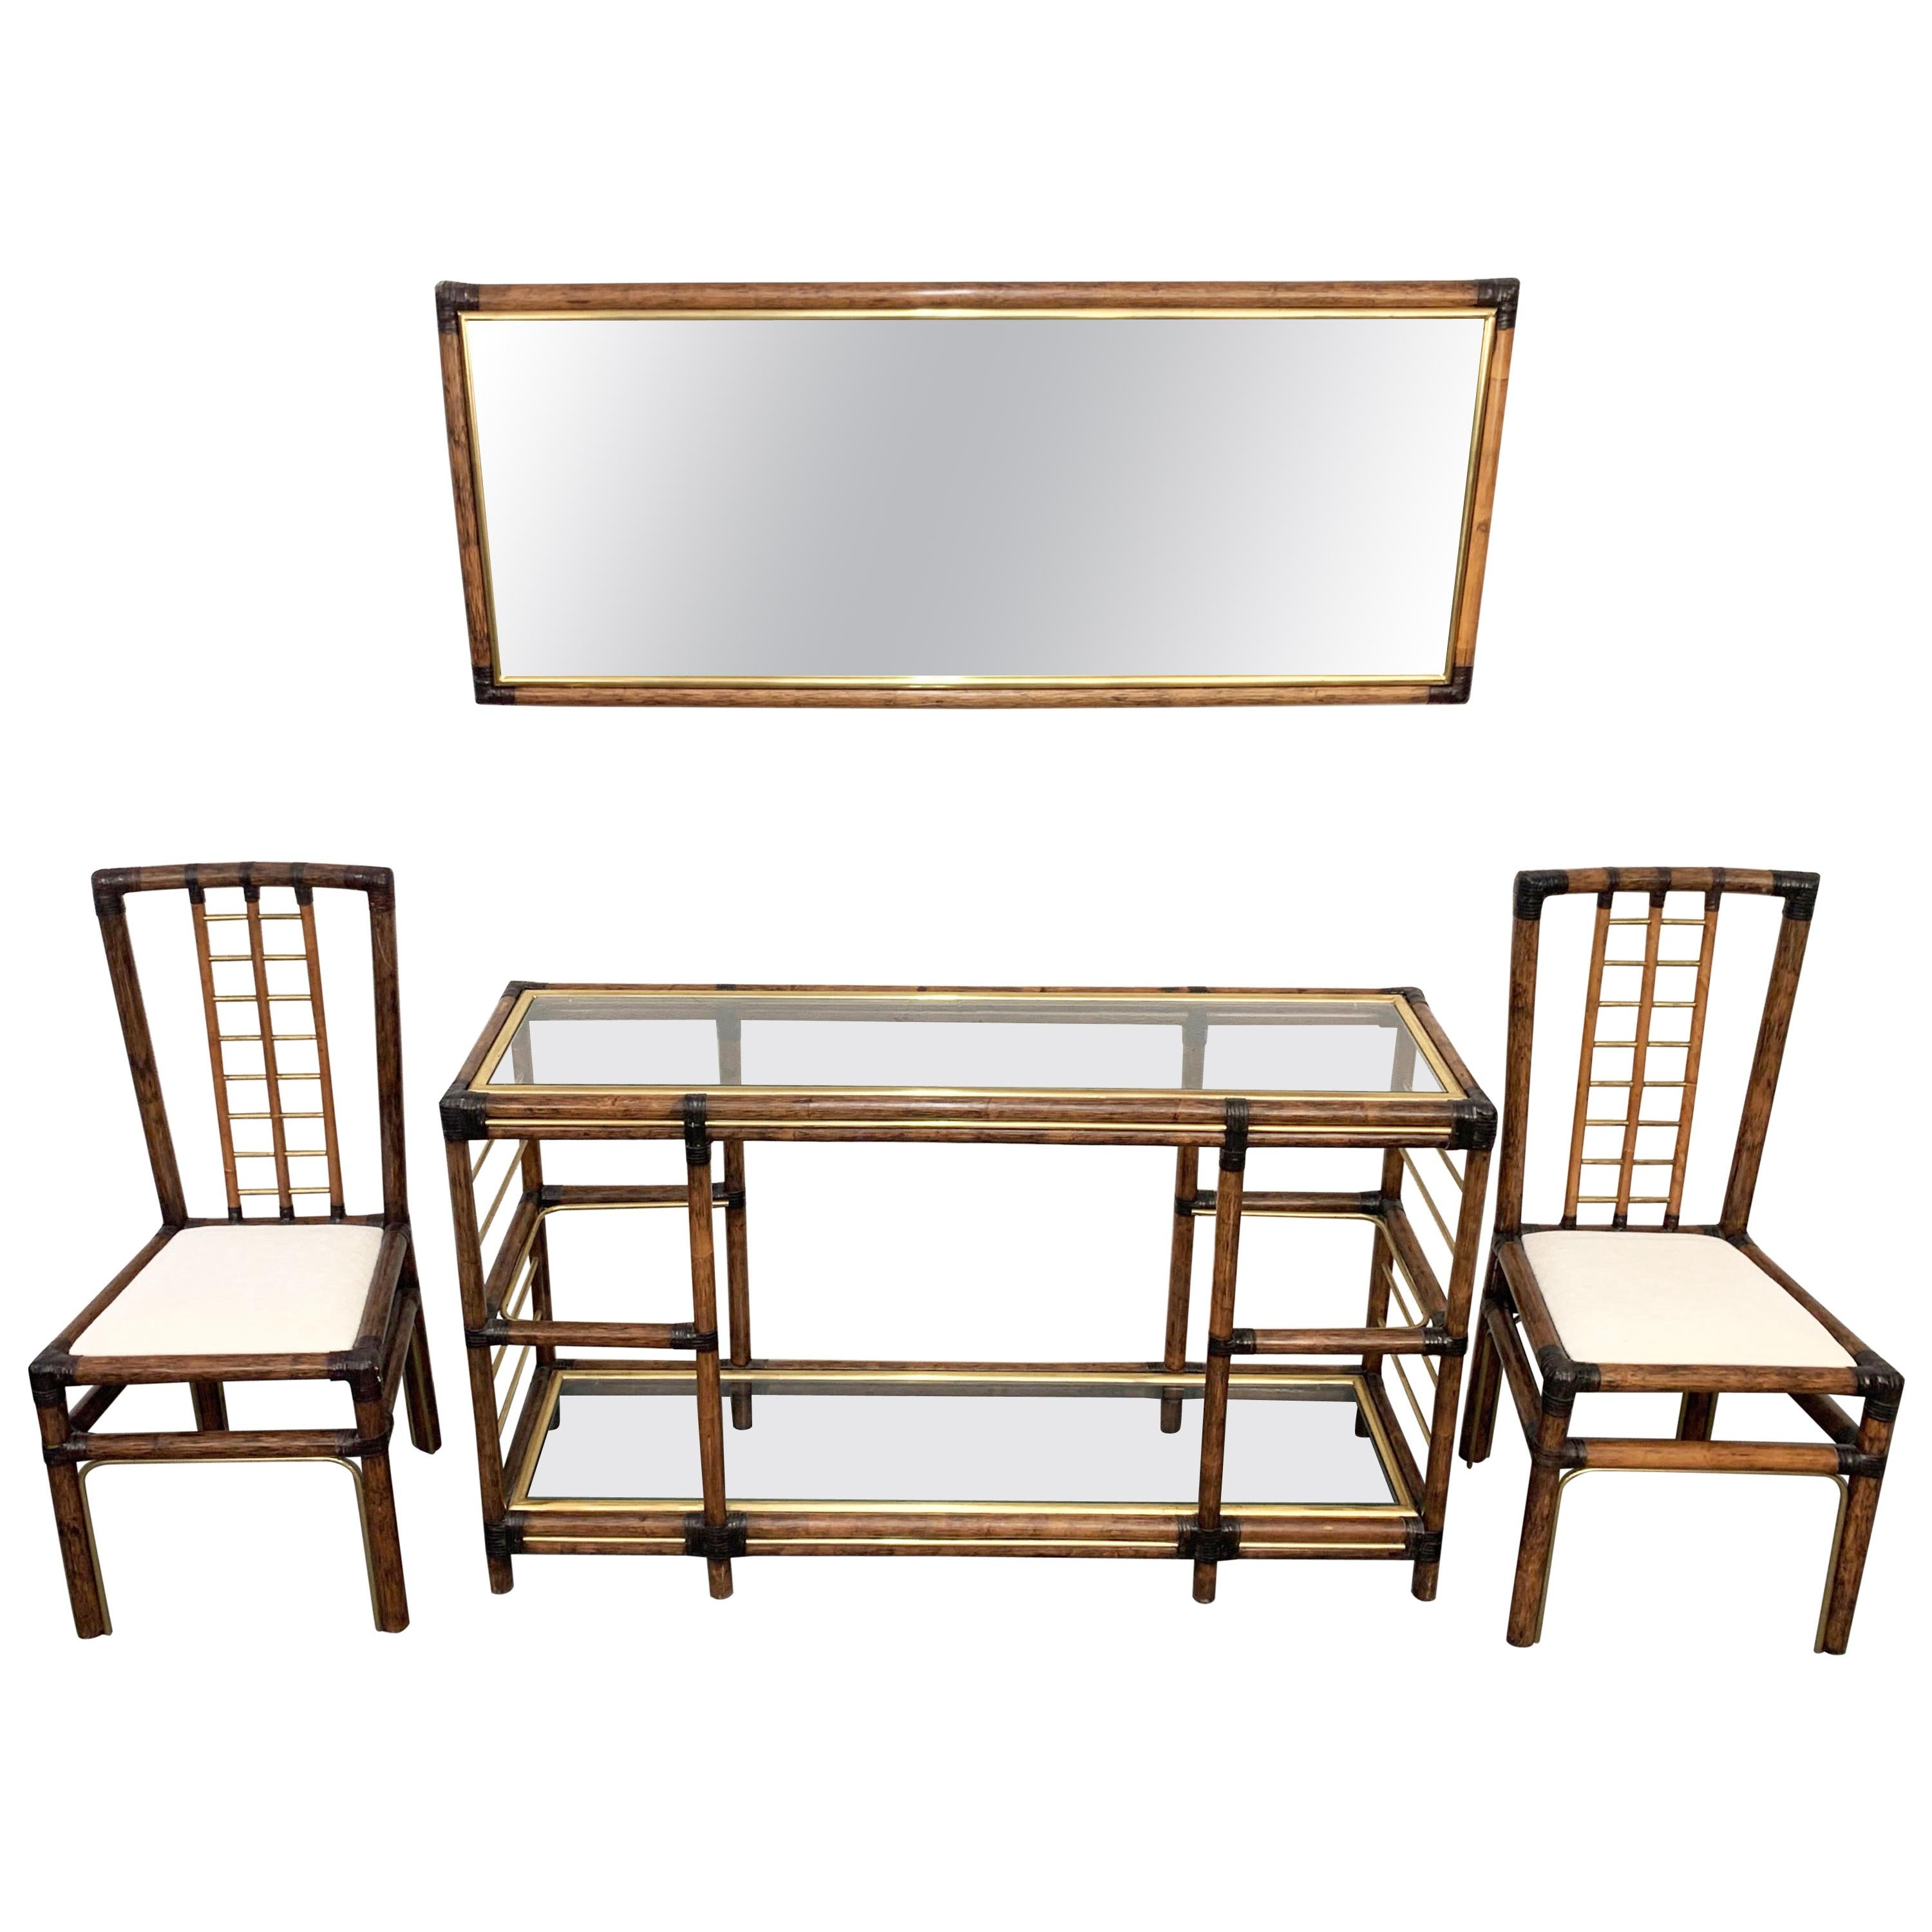 Midcentury Bamboo and Brass Console Table, Wall Mirror and Chairs, Italy, 1980s